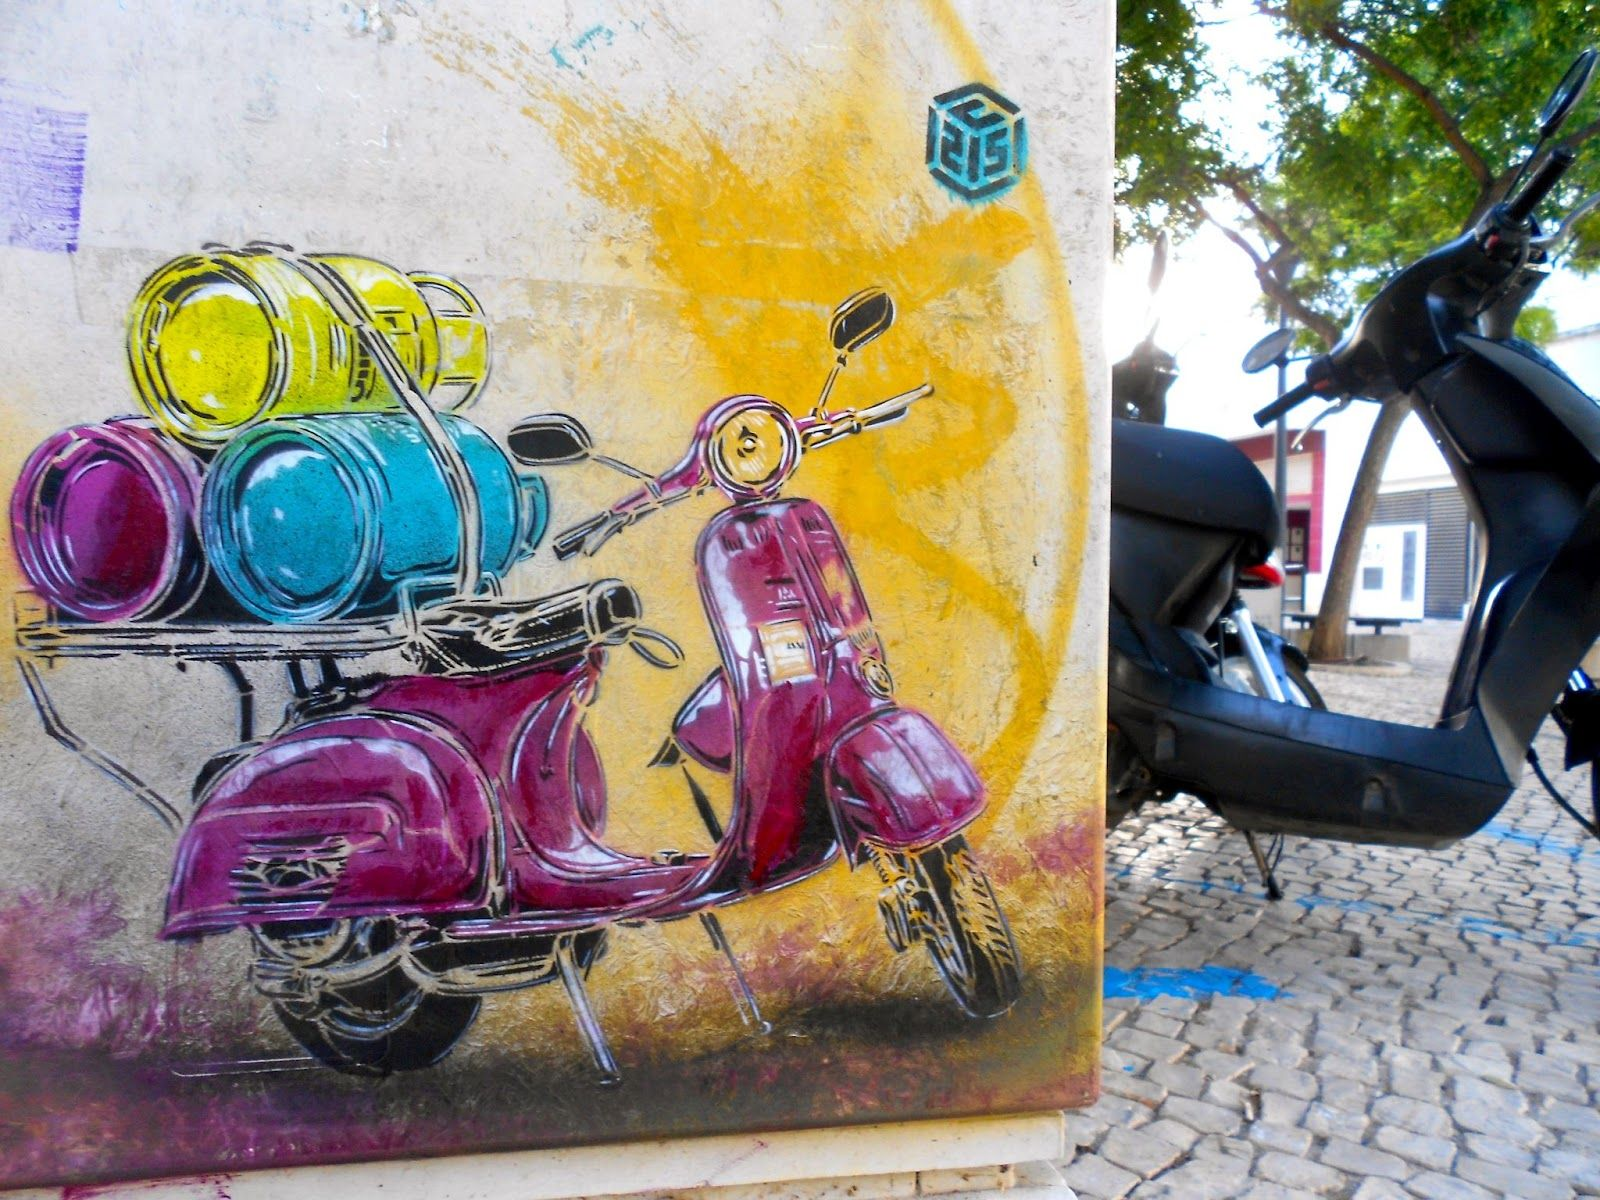 Lagos, Portugal | Street Art | Pinterest | Street art, Street and ...